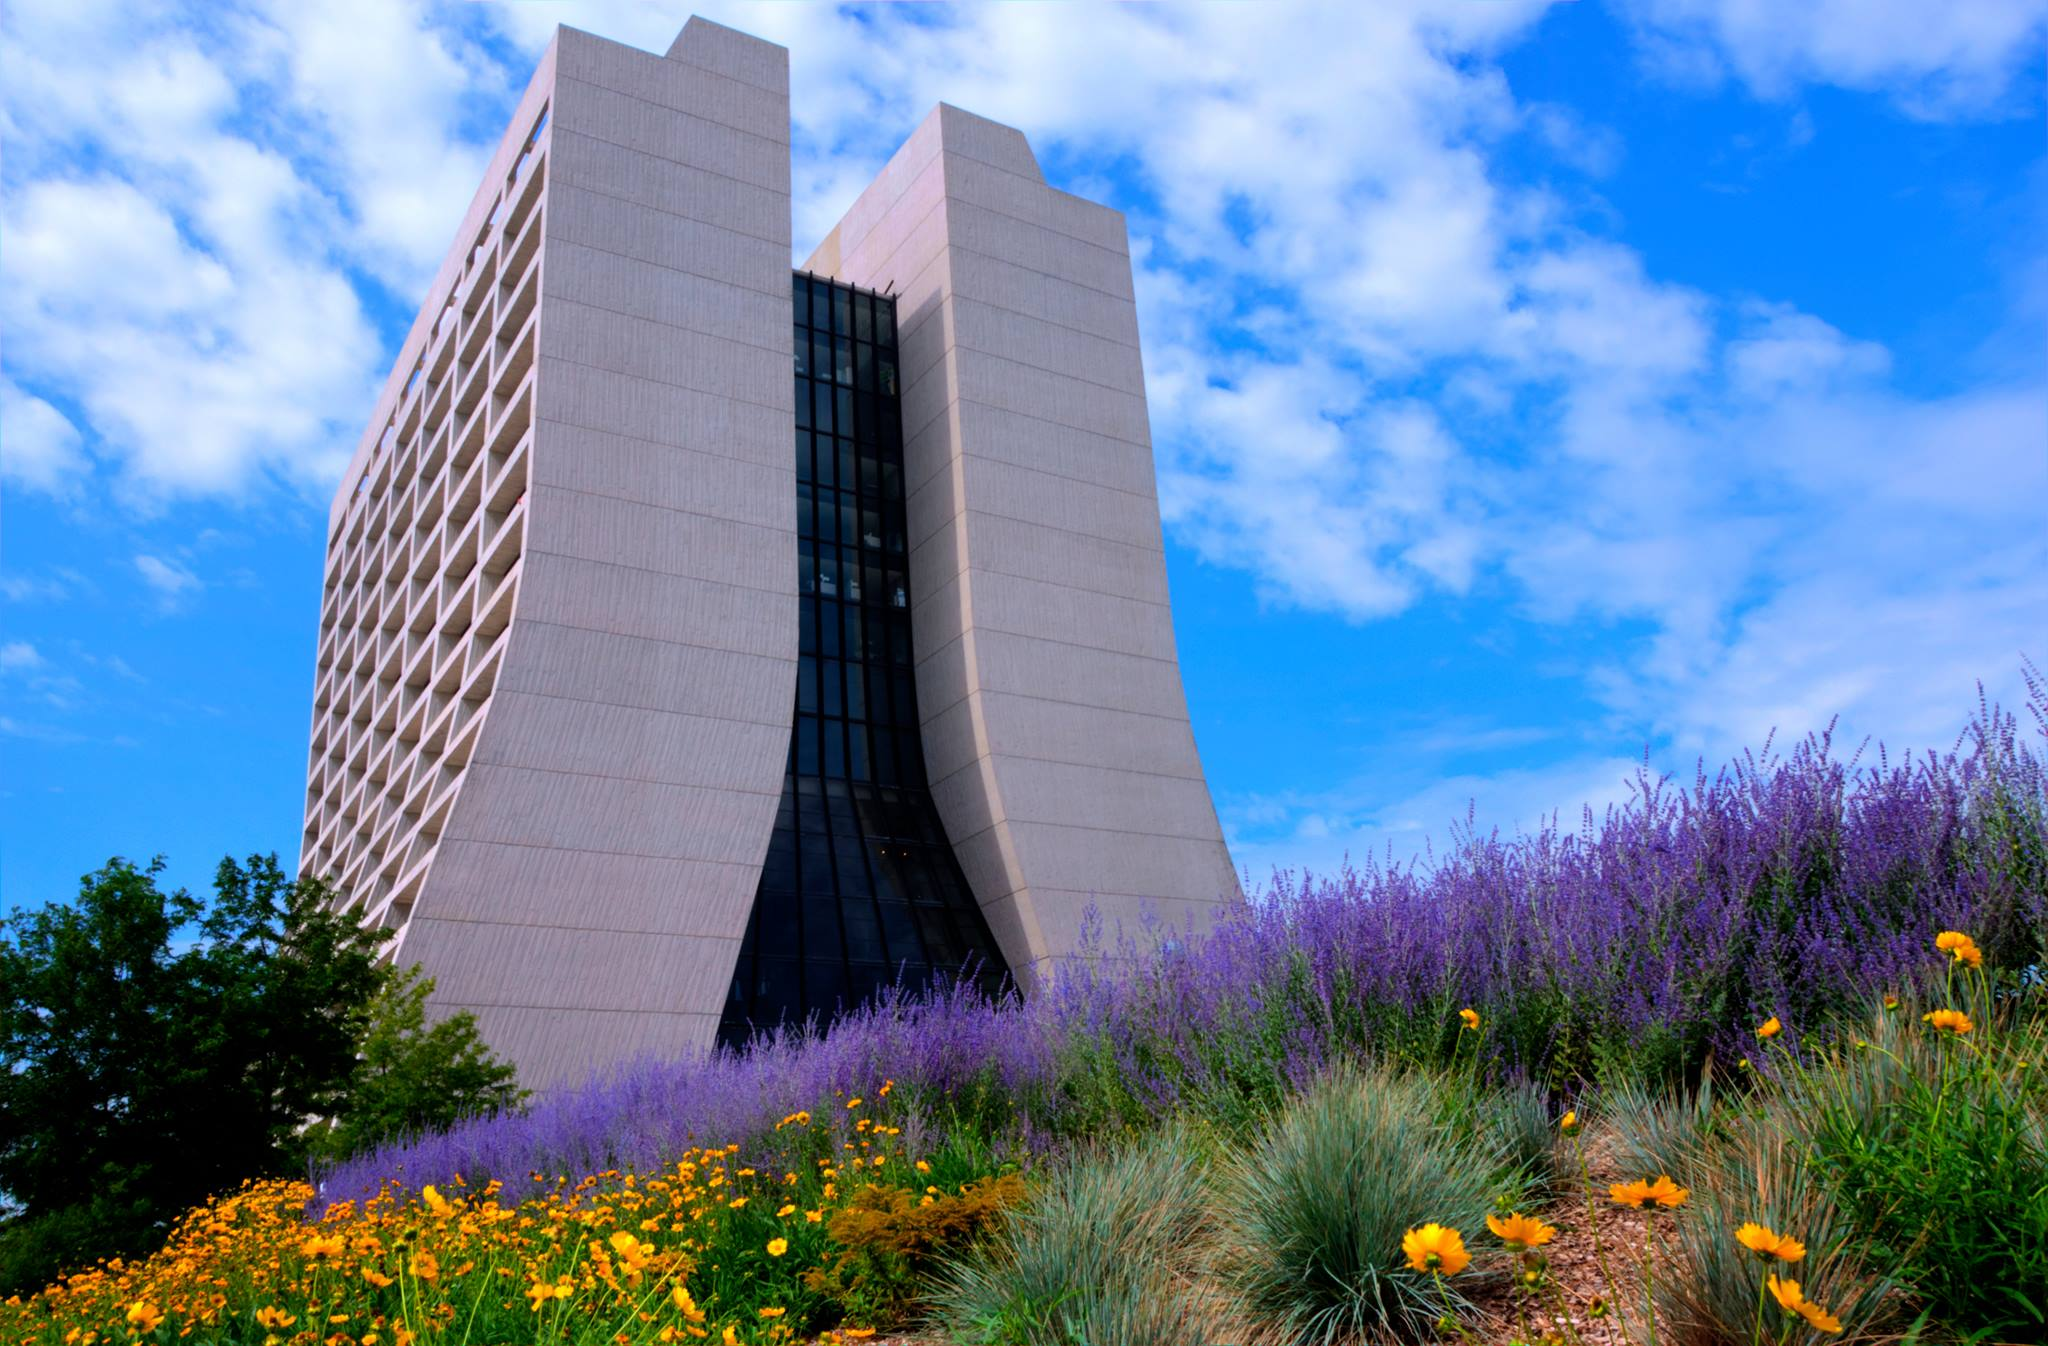 Vibrant colors surround Wilson Hall on a summer day. Photo: Laura Wimmers Paterno